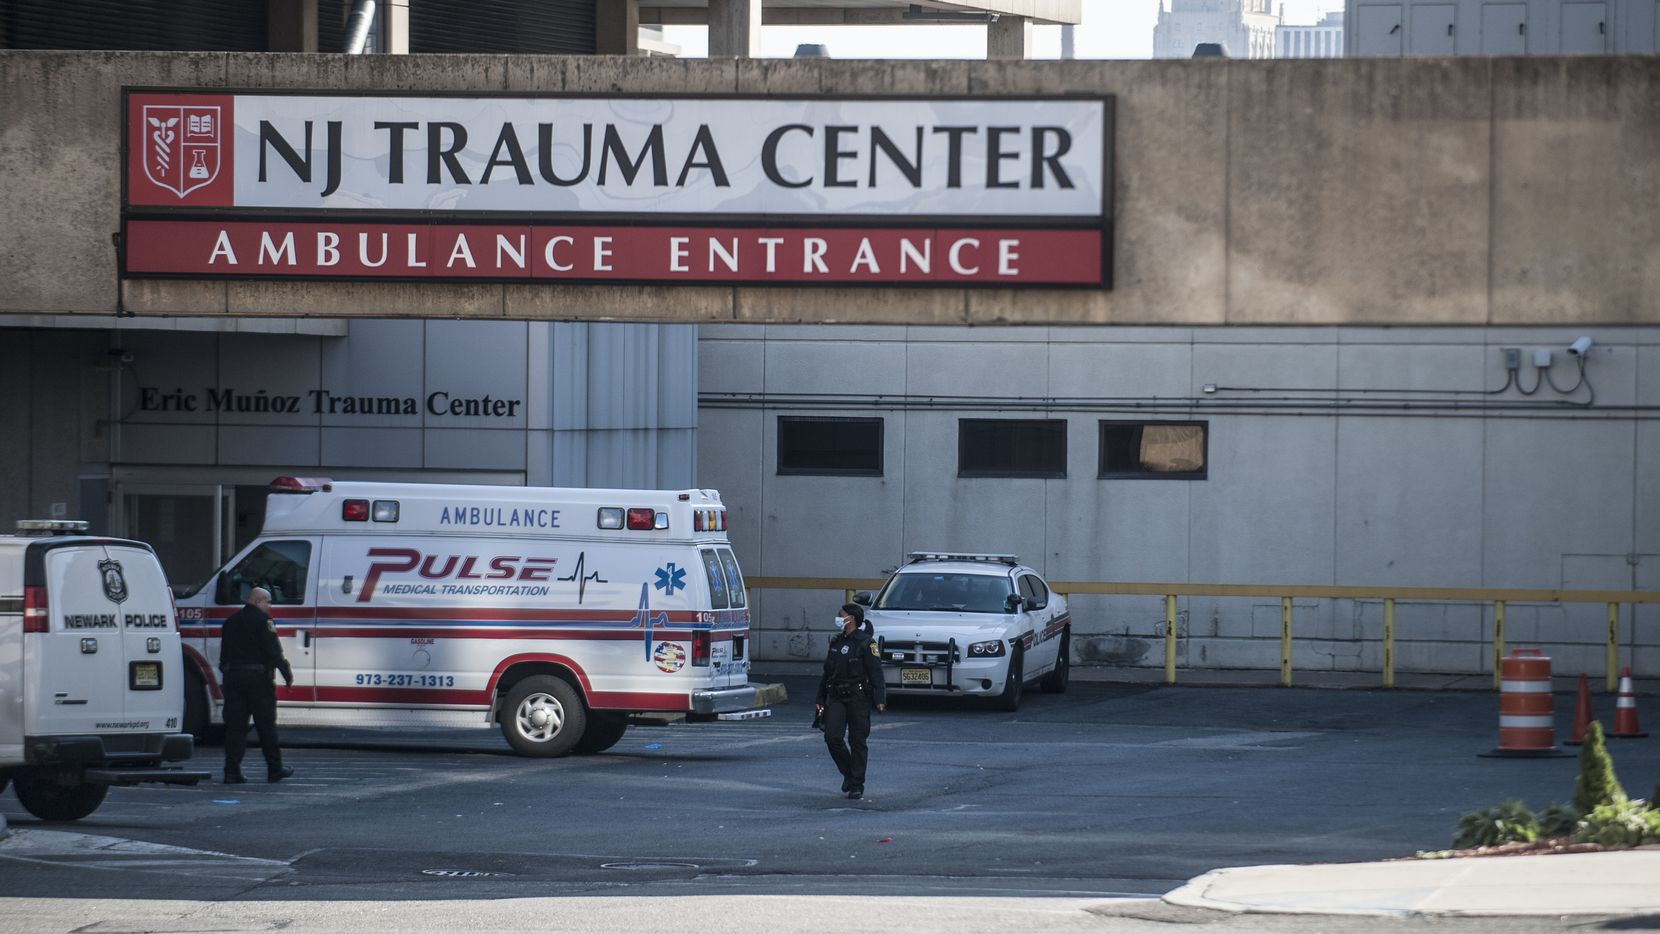 Nurse Kaci Hickox, who worked with Ebola patients in West Africa, was placed under quarantine at Rutgers University Hospital upon her arrival stateside in Newark, N.J. Hickox became the first person to fall under the mandatory 21-day quarantine announced late Friday by Gov. Andrew Cuomo of New York and Gov. Chris Christie of New Jersey.